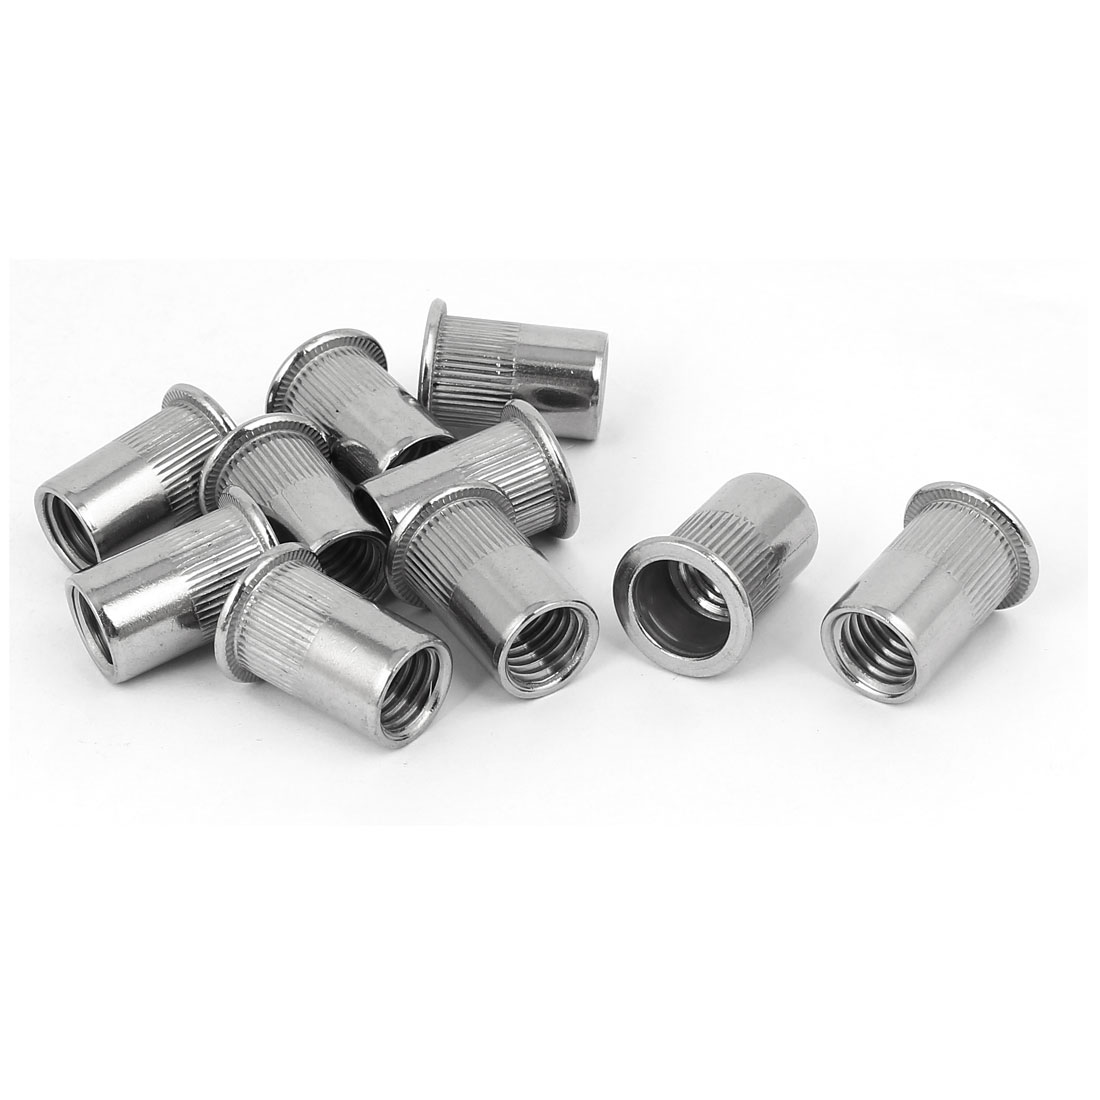 M12 x 1.75mm 304 Stainless Steel Stripe Blind Rivet Nut Insert Nutsert 10PCS